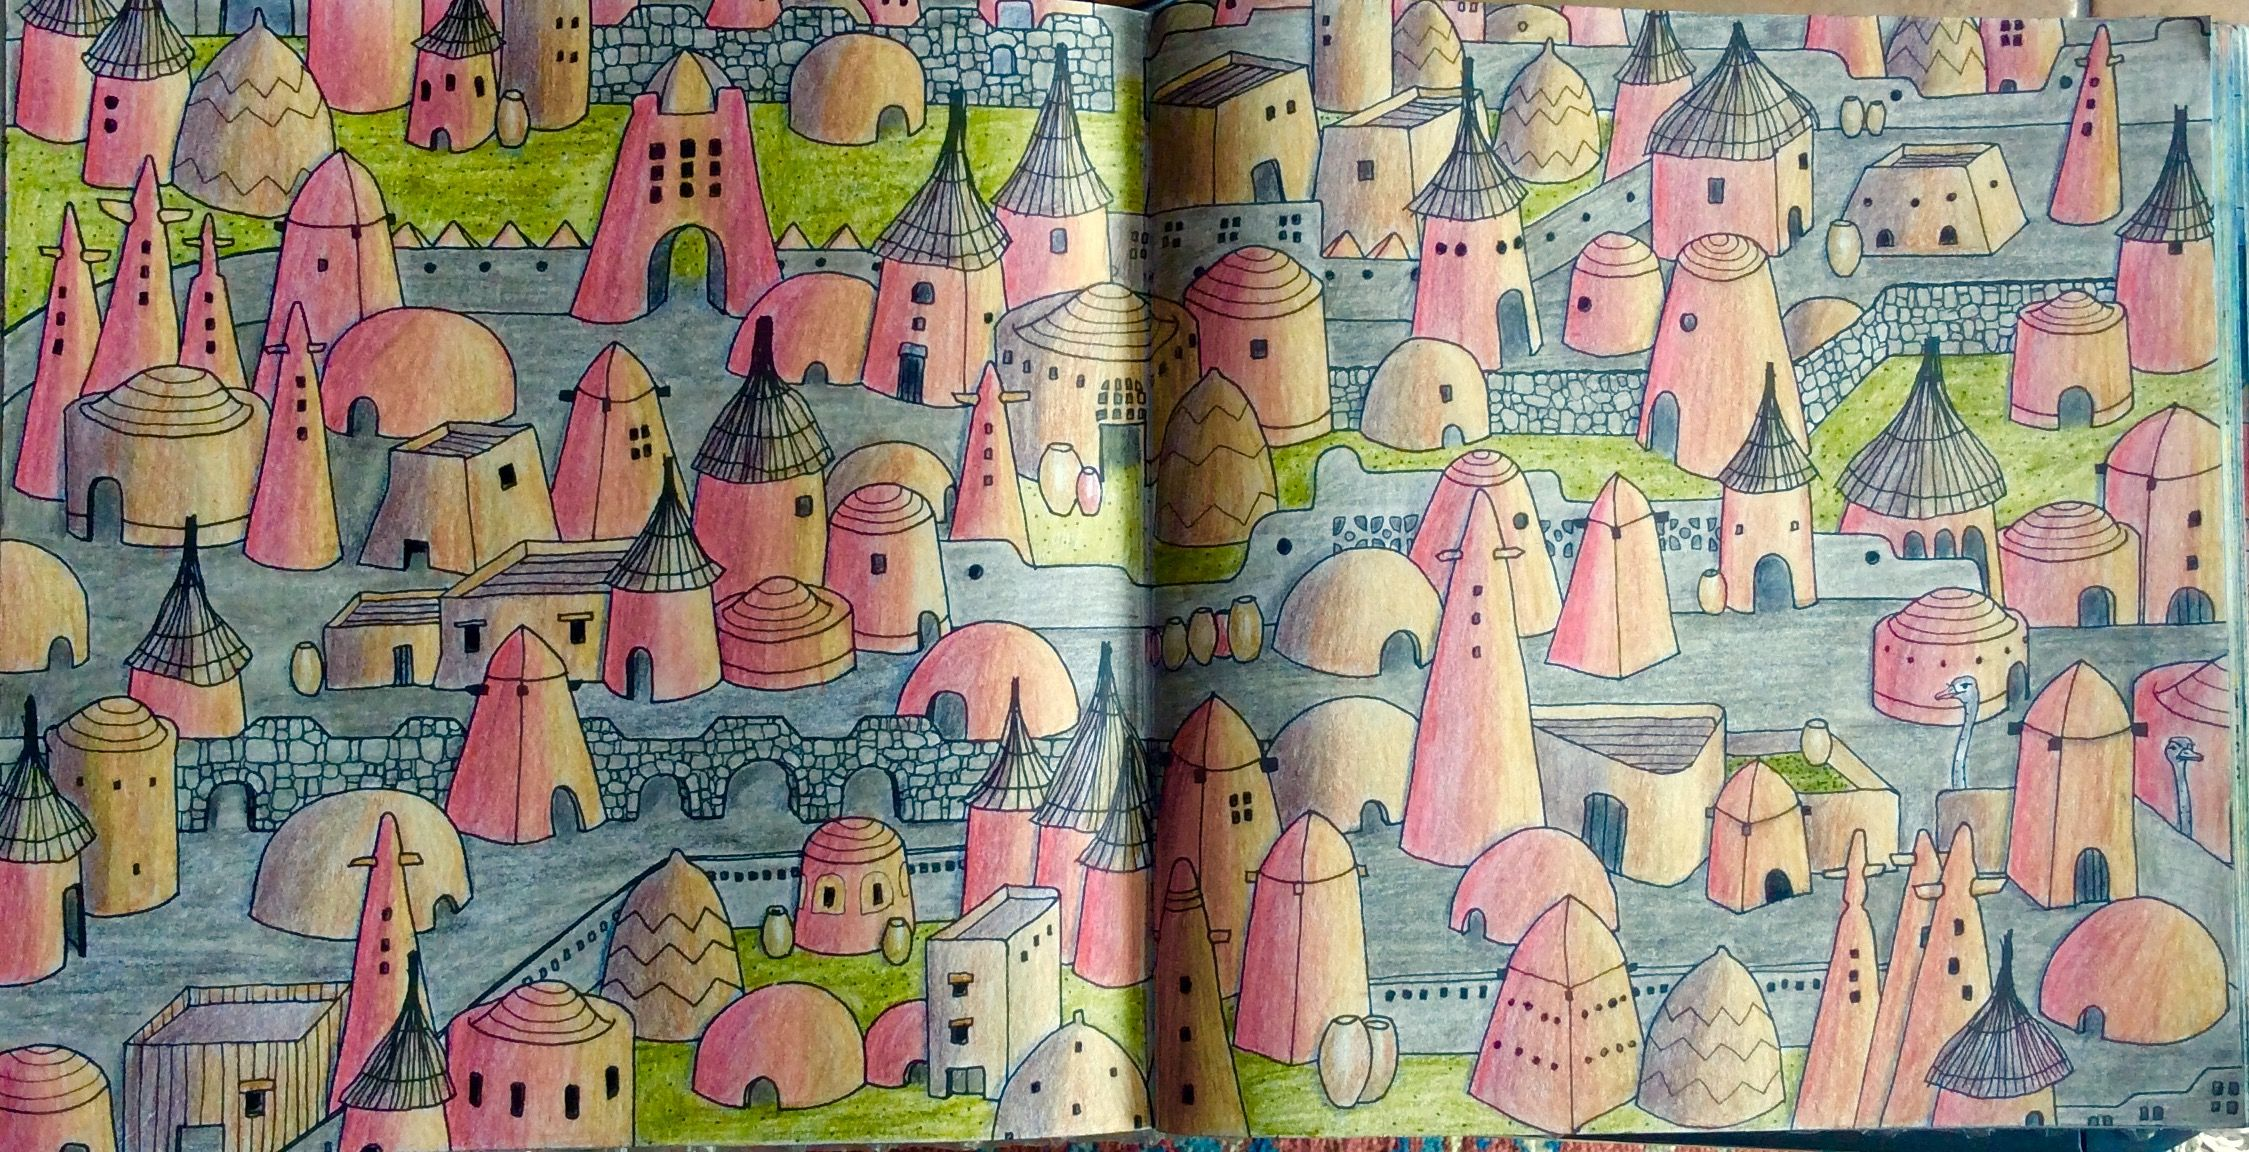 Dream Cities An Adobe Village Coloured By Prue Adult ColoringColouringColoring BooksDream